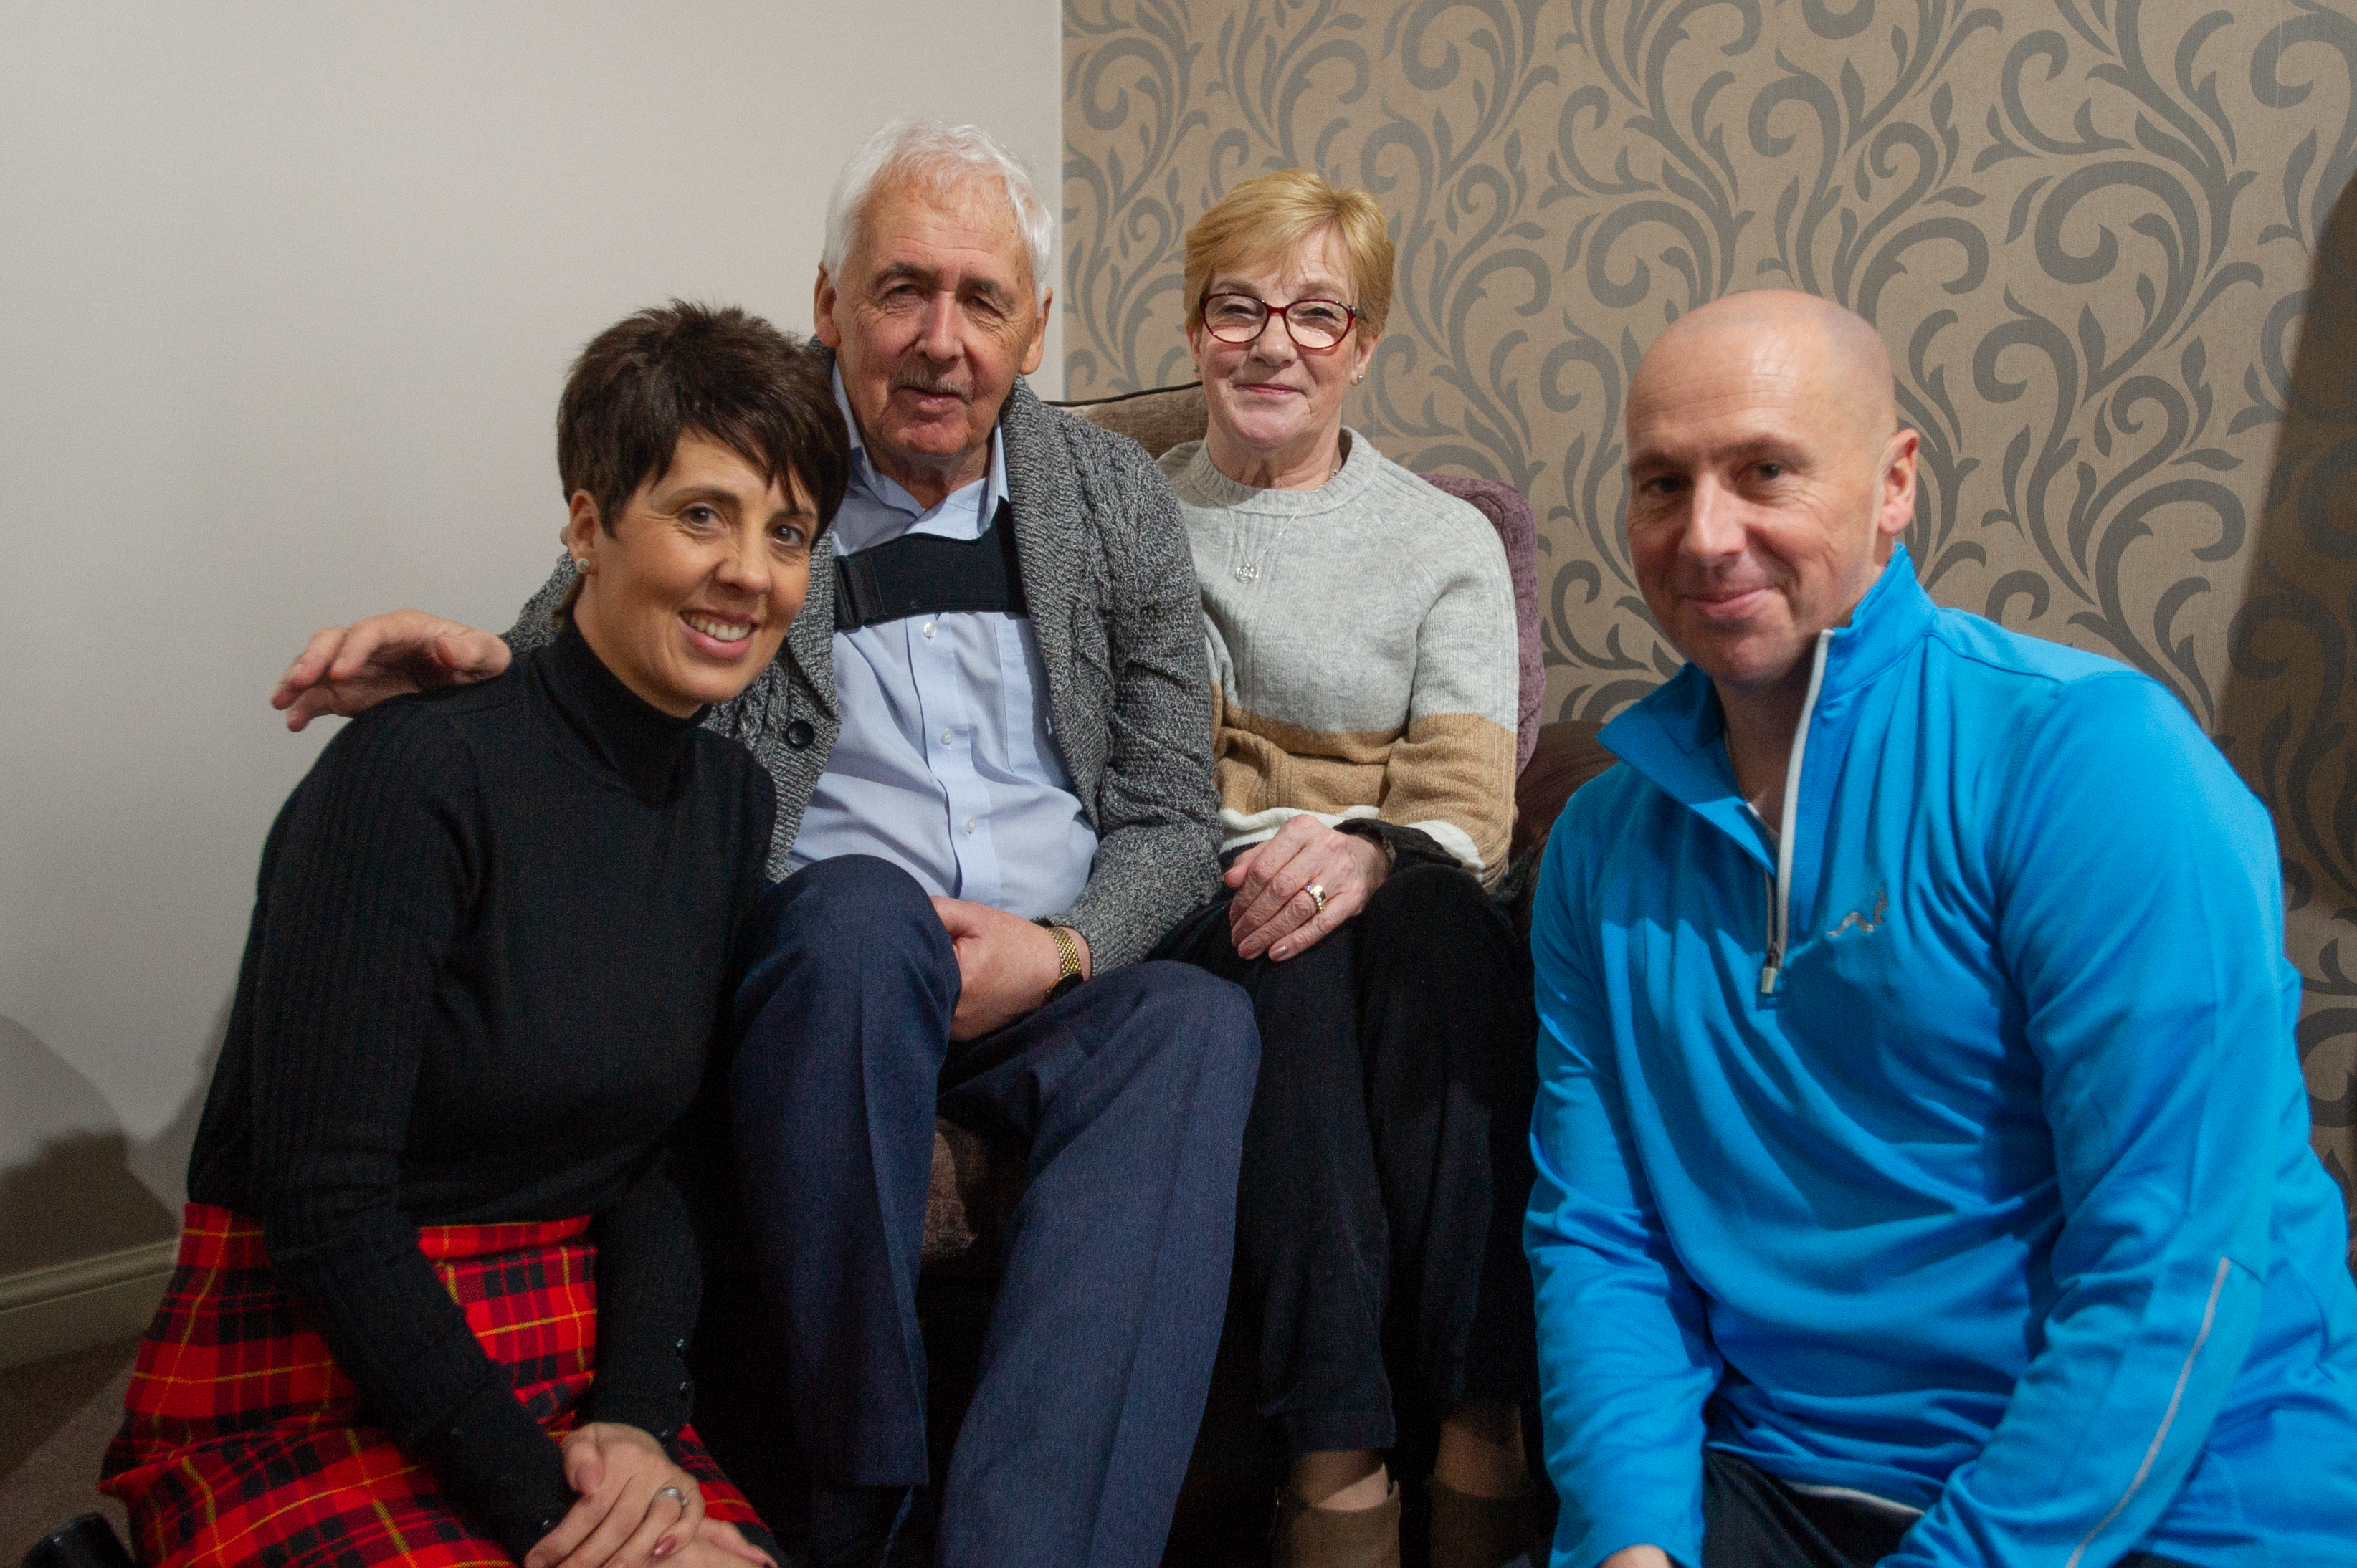 Left to right: Debbie Hamilton (charity runner), Alan (dad), Maureen (mum) and Ricky (runner).